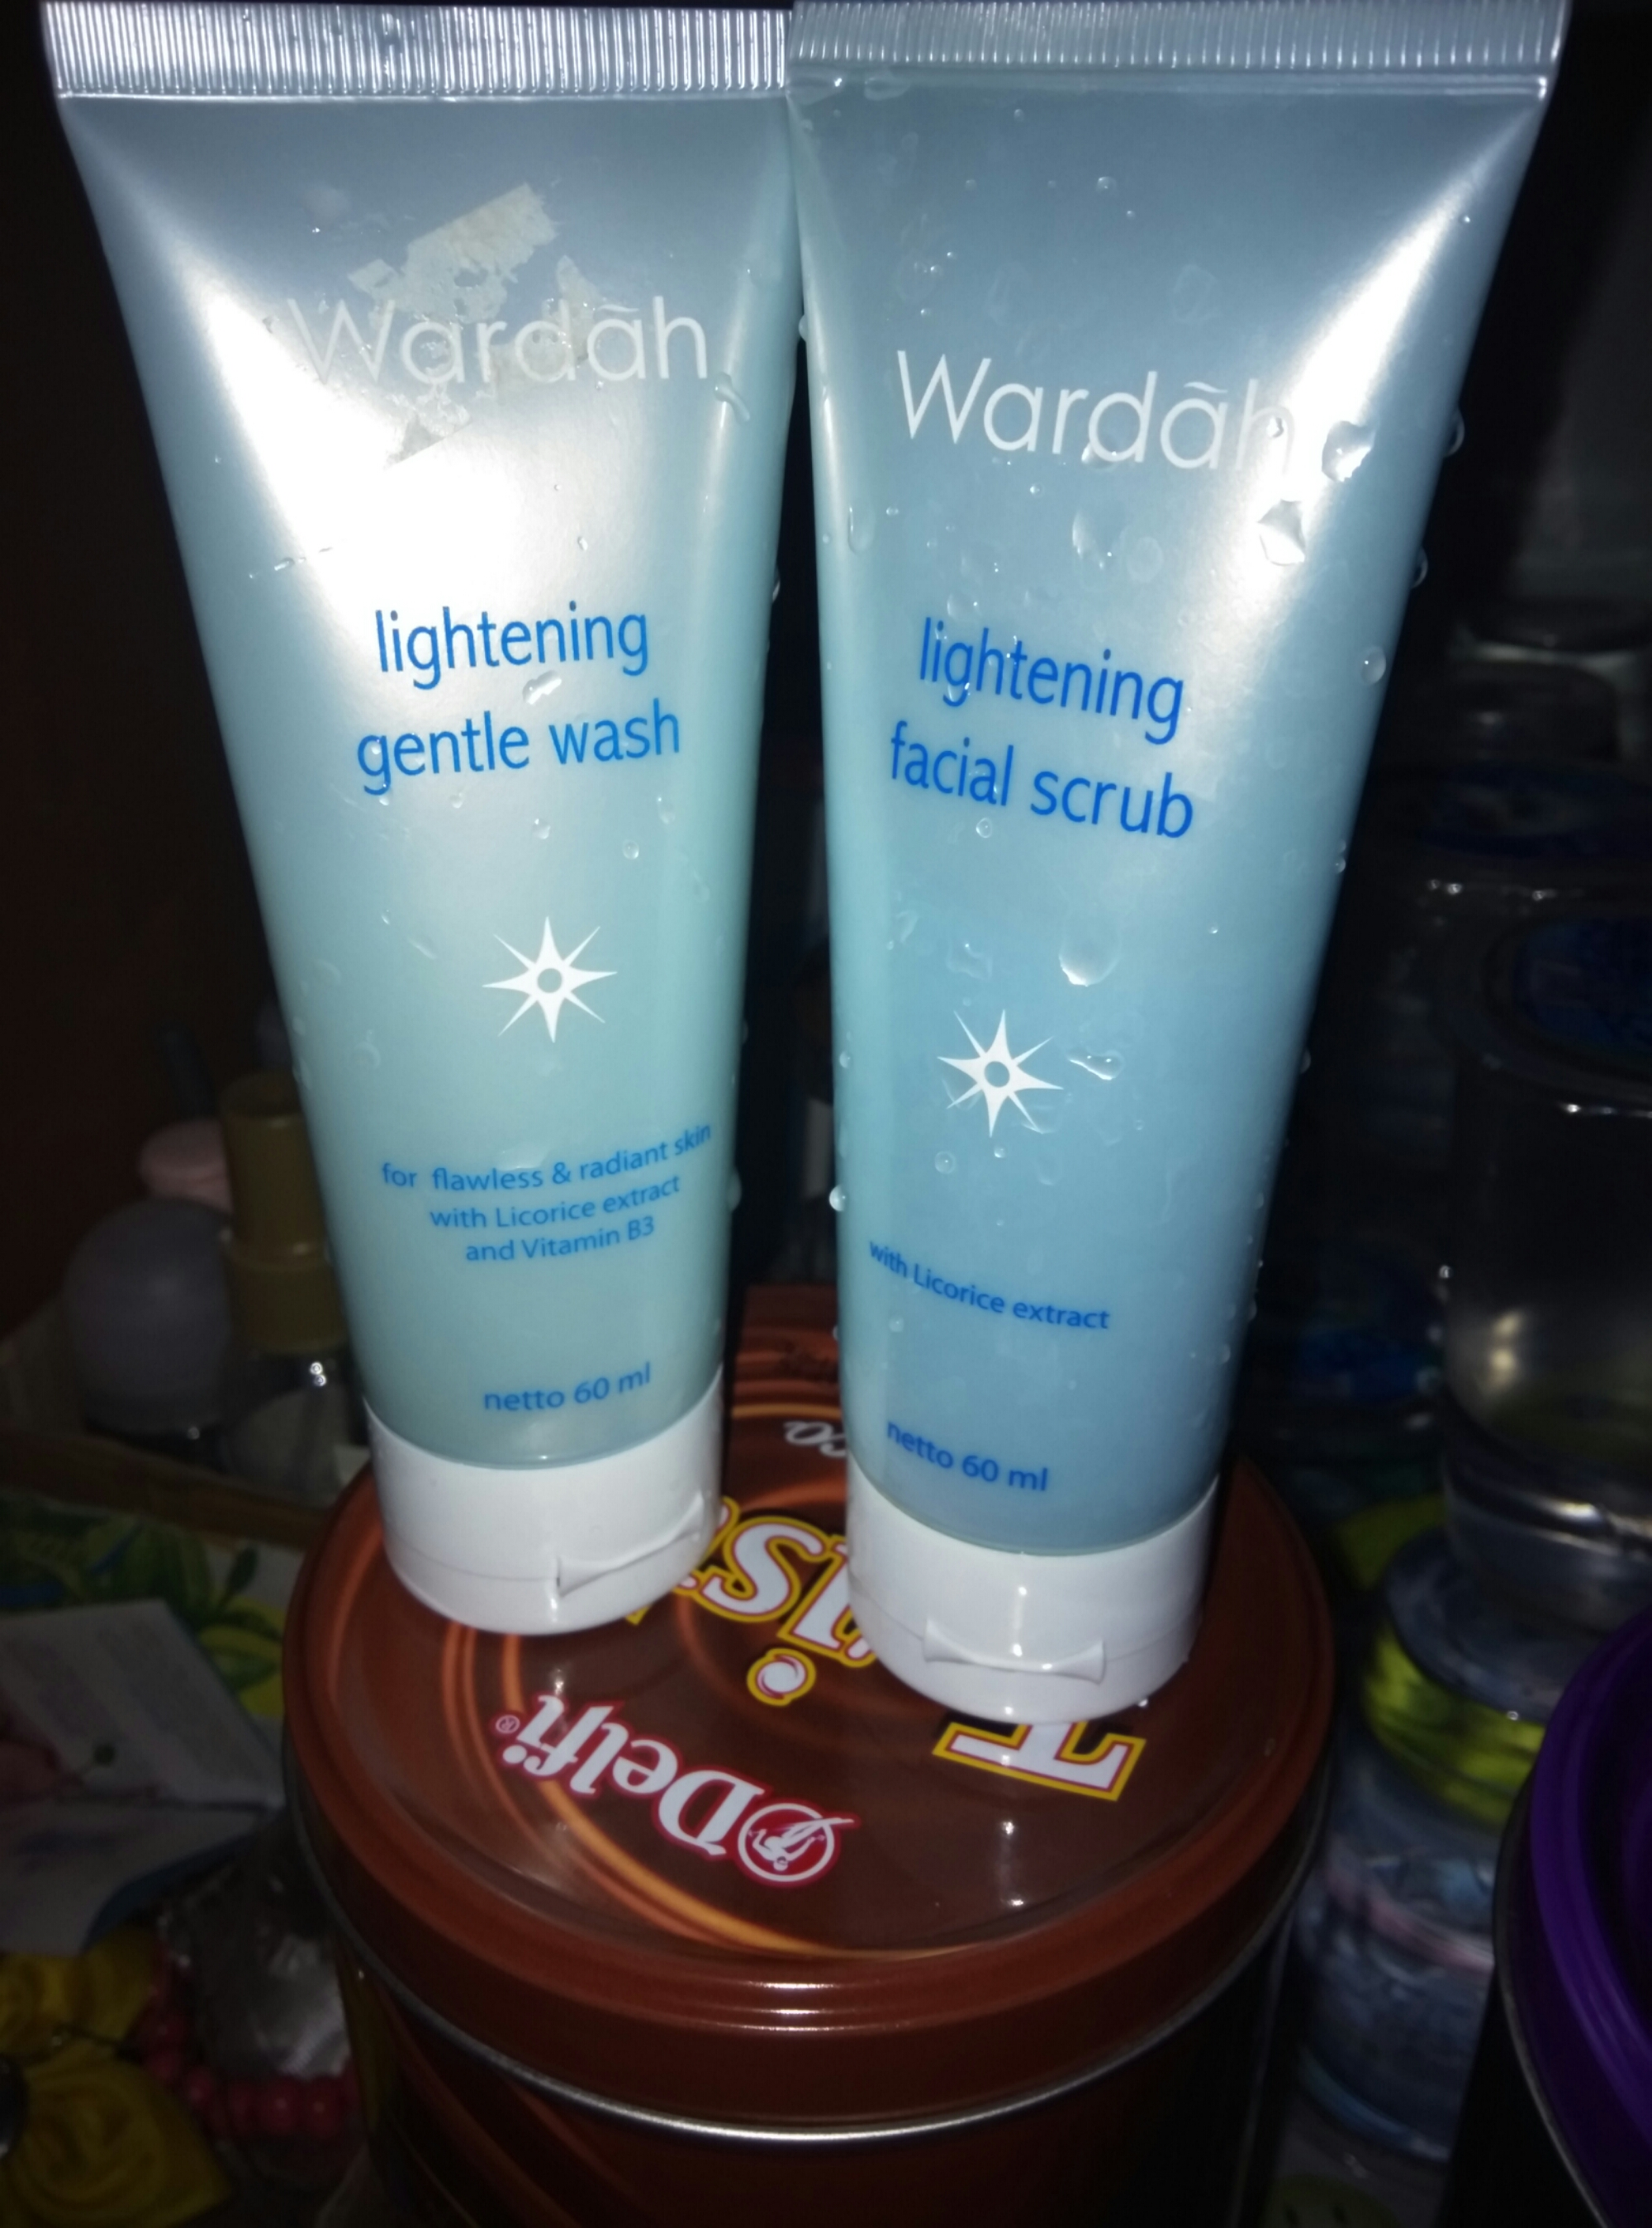 Review Produk Wardah Always Full Of Love Lightening Face Toner Gentle Facial Wash Scrub Series